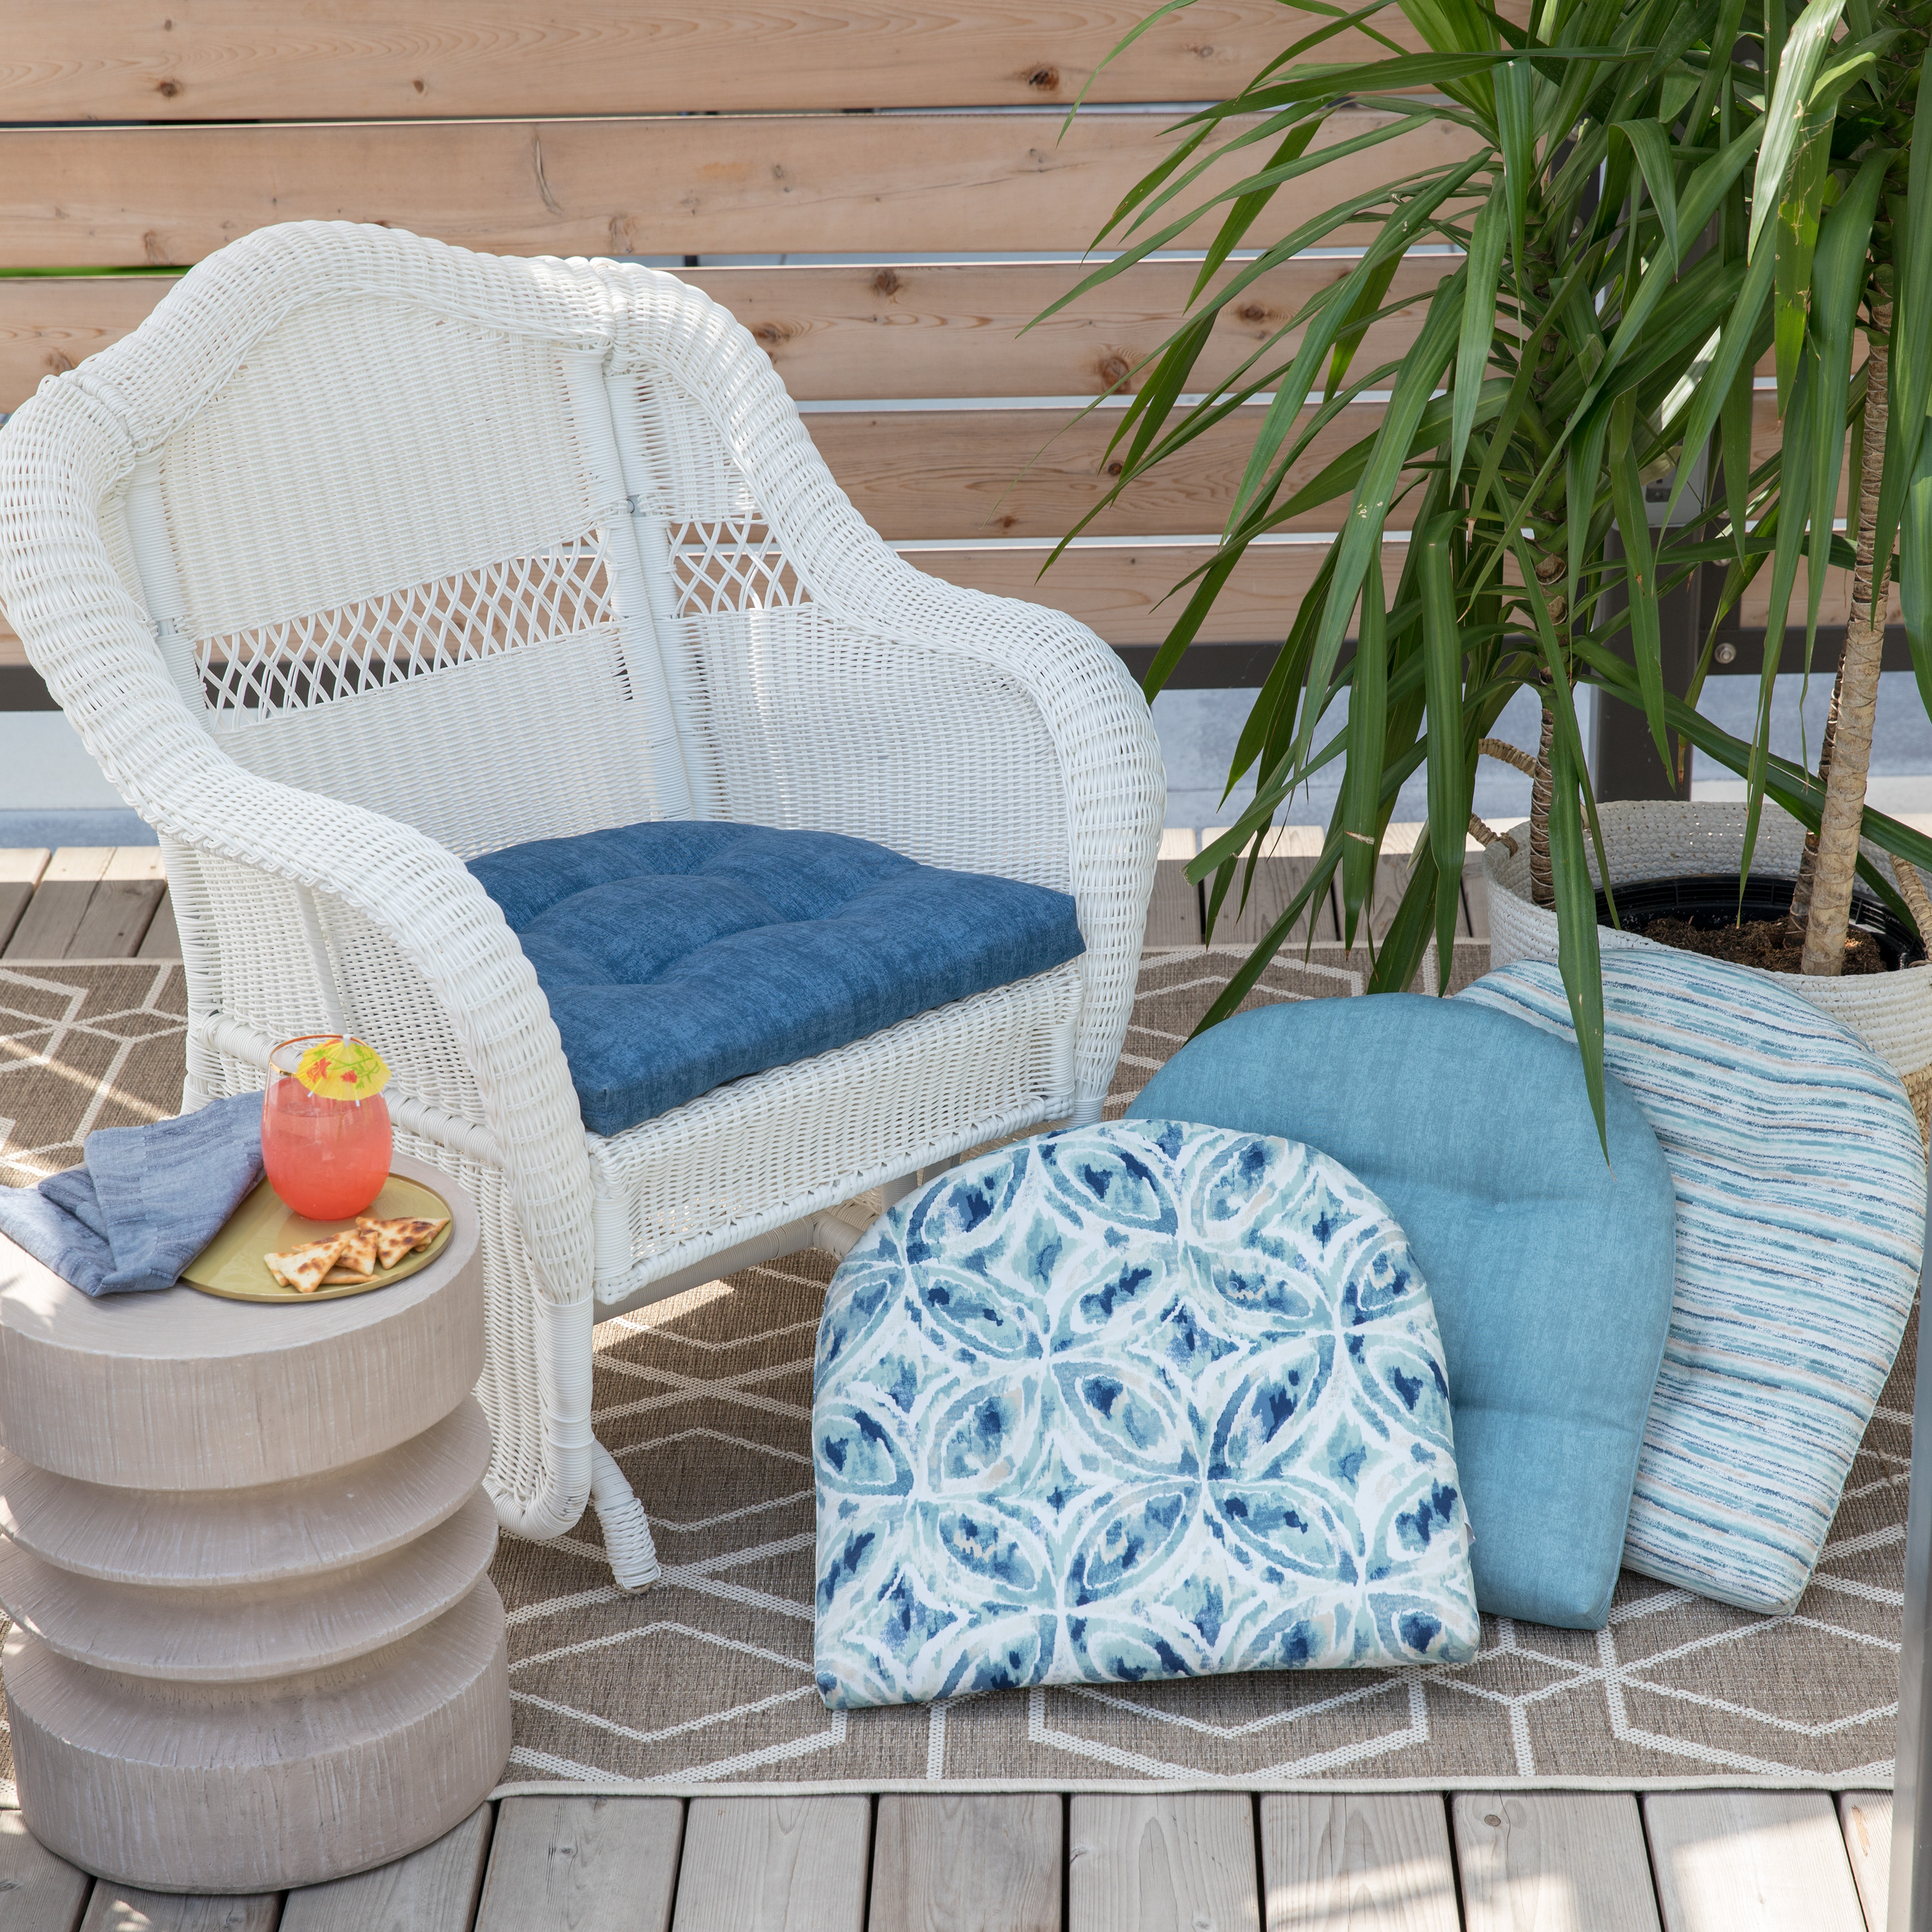 cushions for wicker chairs swivel chair furniture outdoor hayneedle belham living new harbor cushion